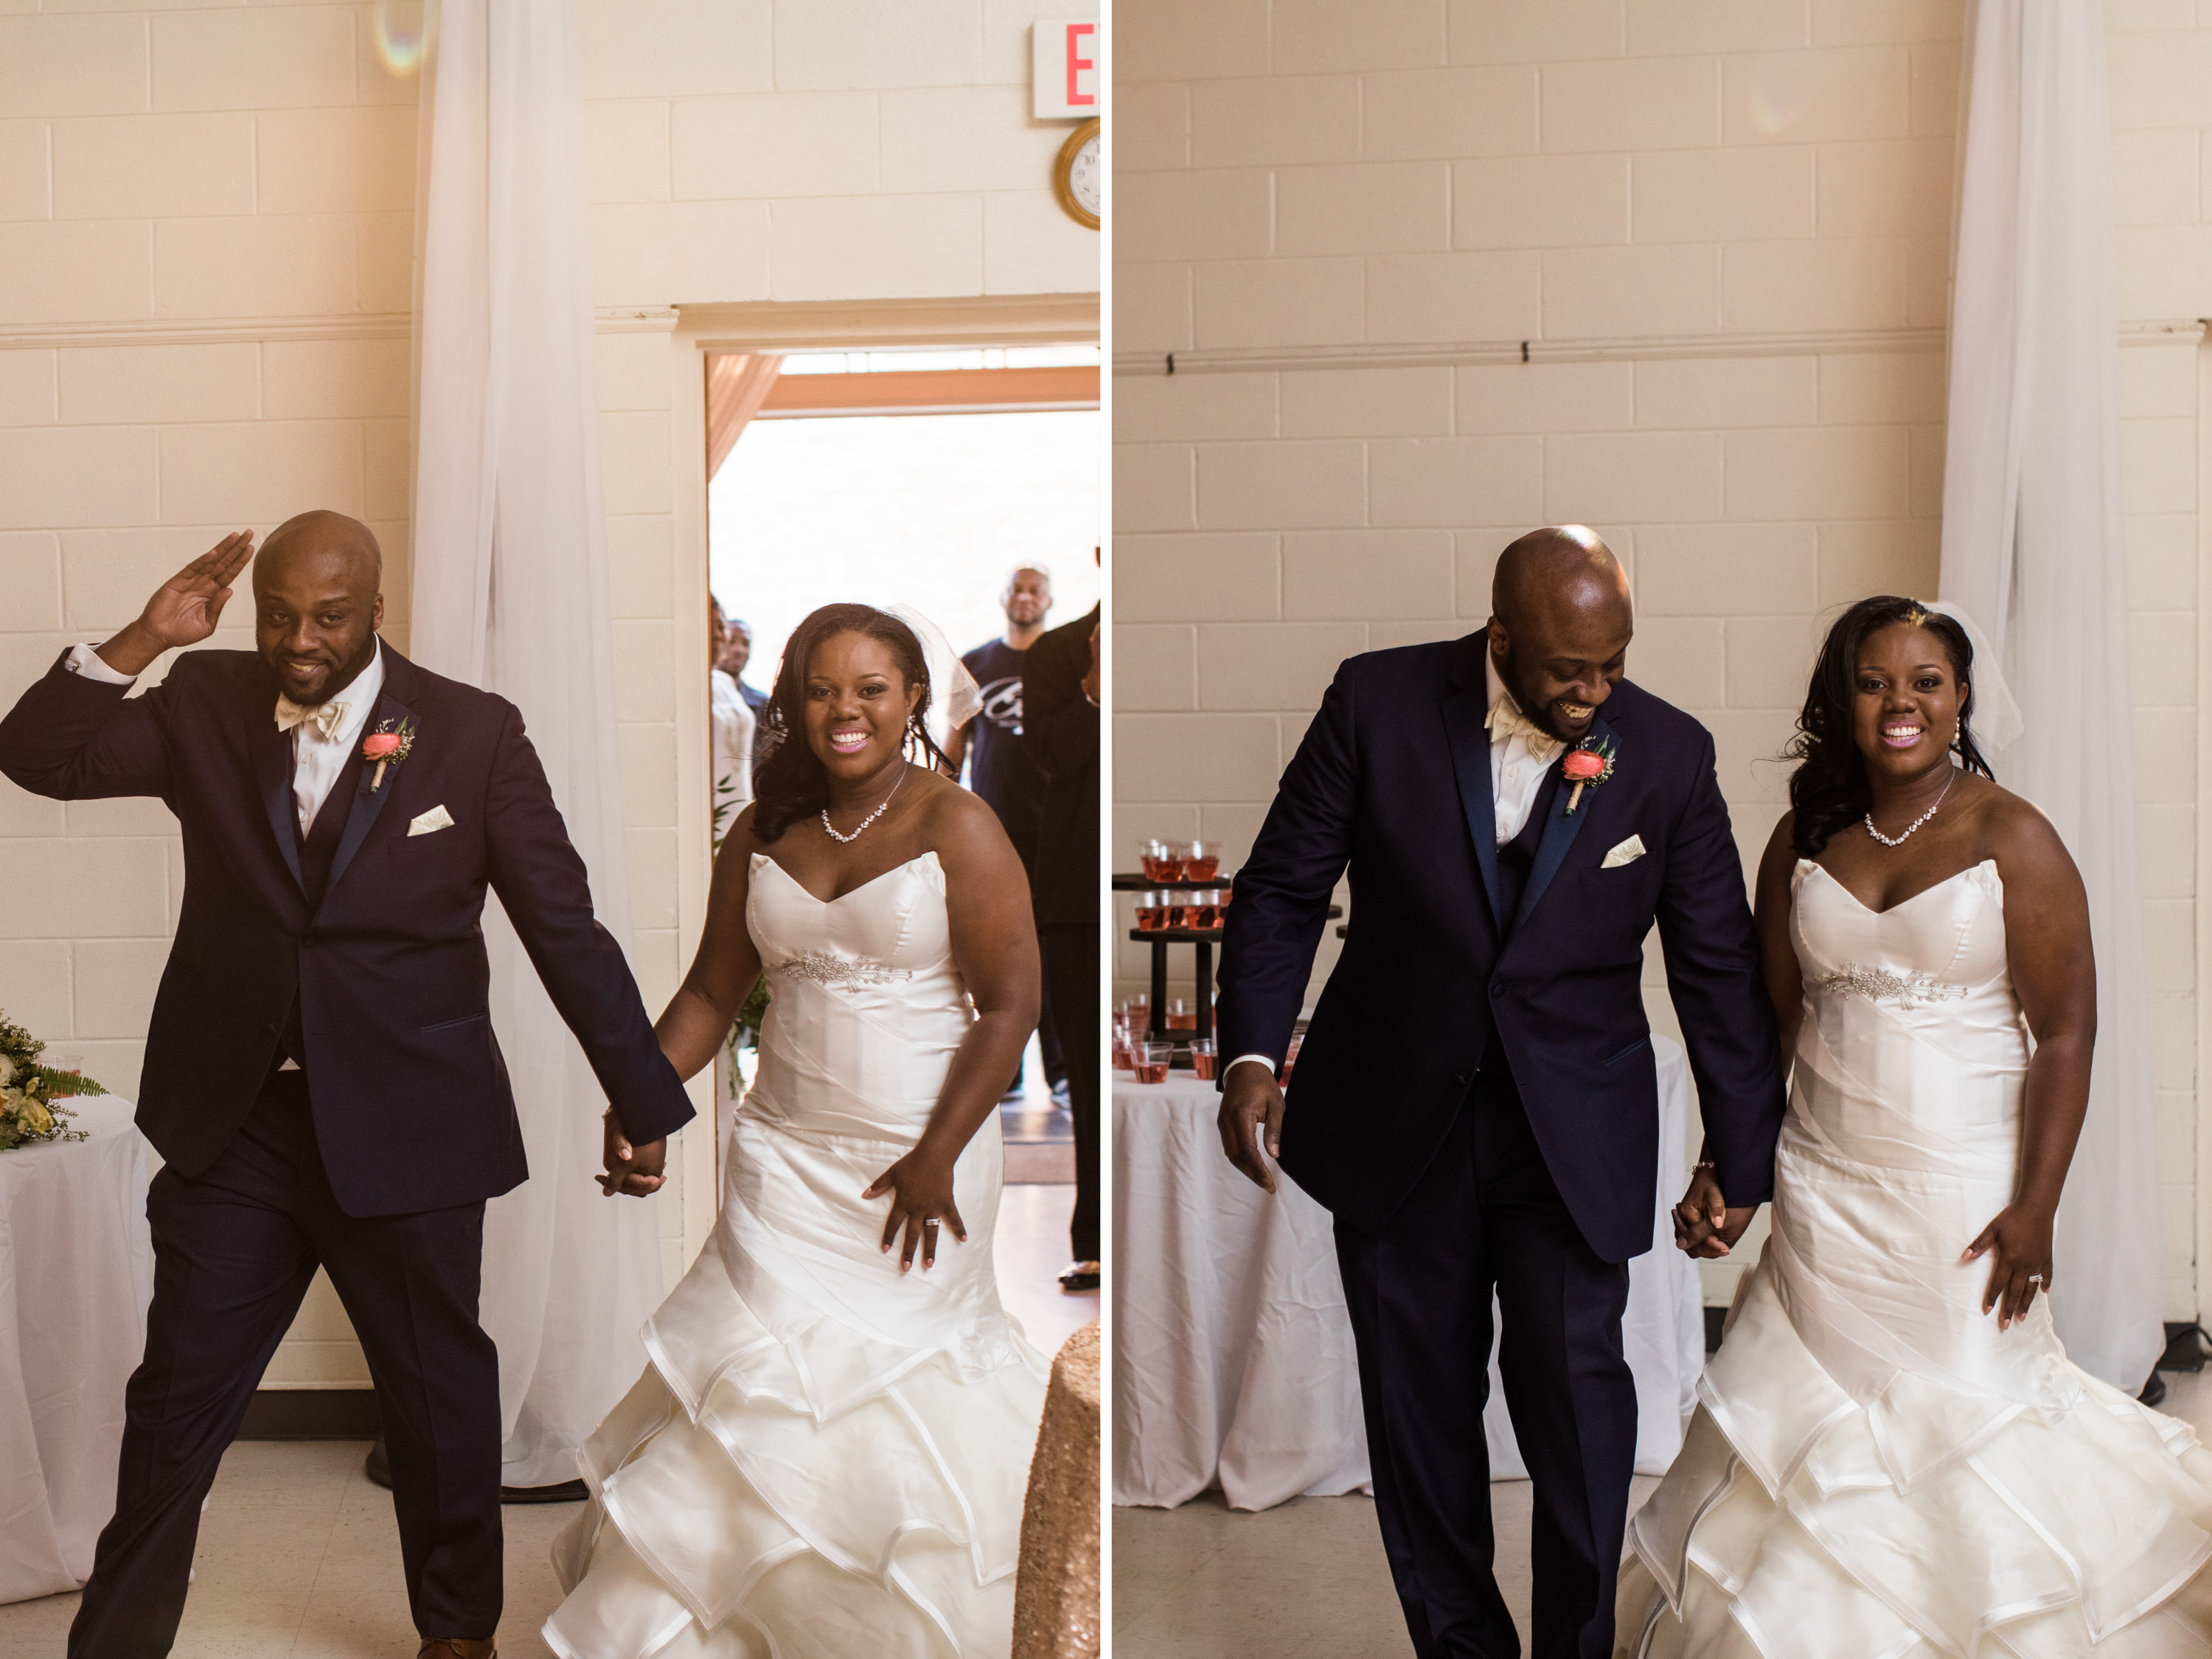 FLOWERS_WEDDING_SELMA_ALABAMA_WEDDING_PHOTOGRAPHY_129